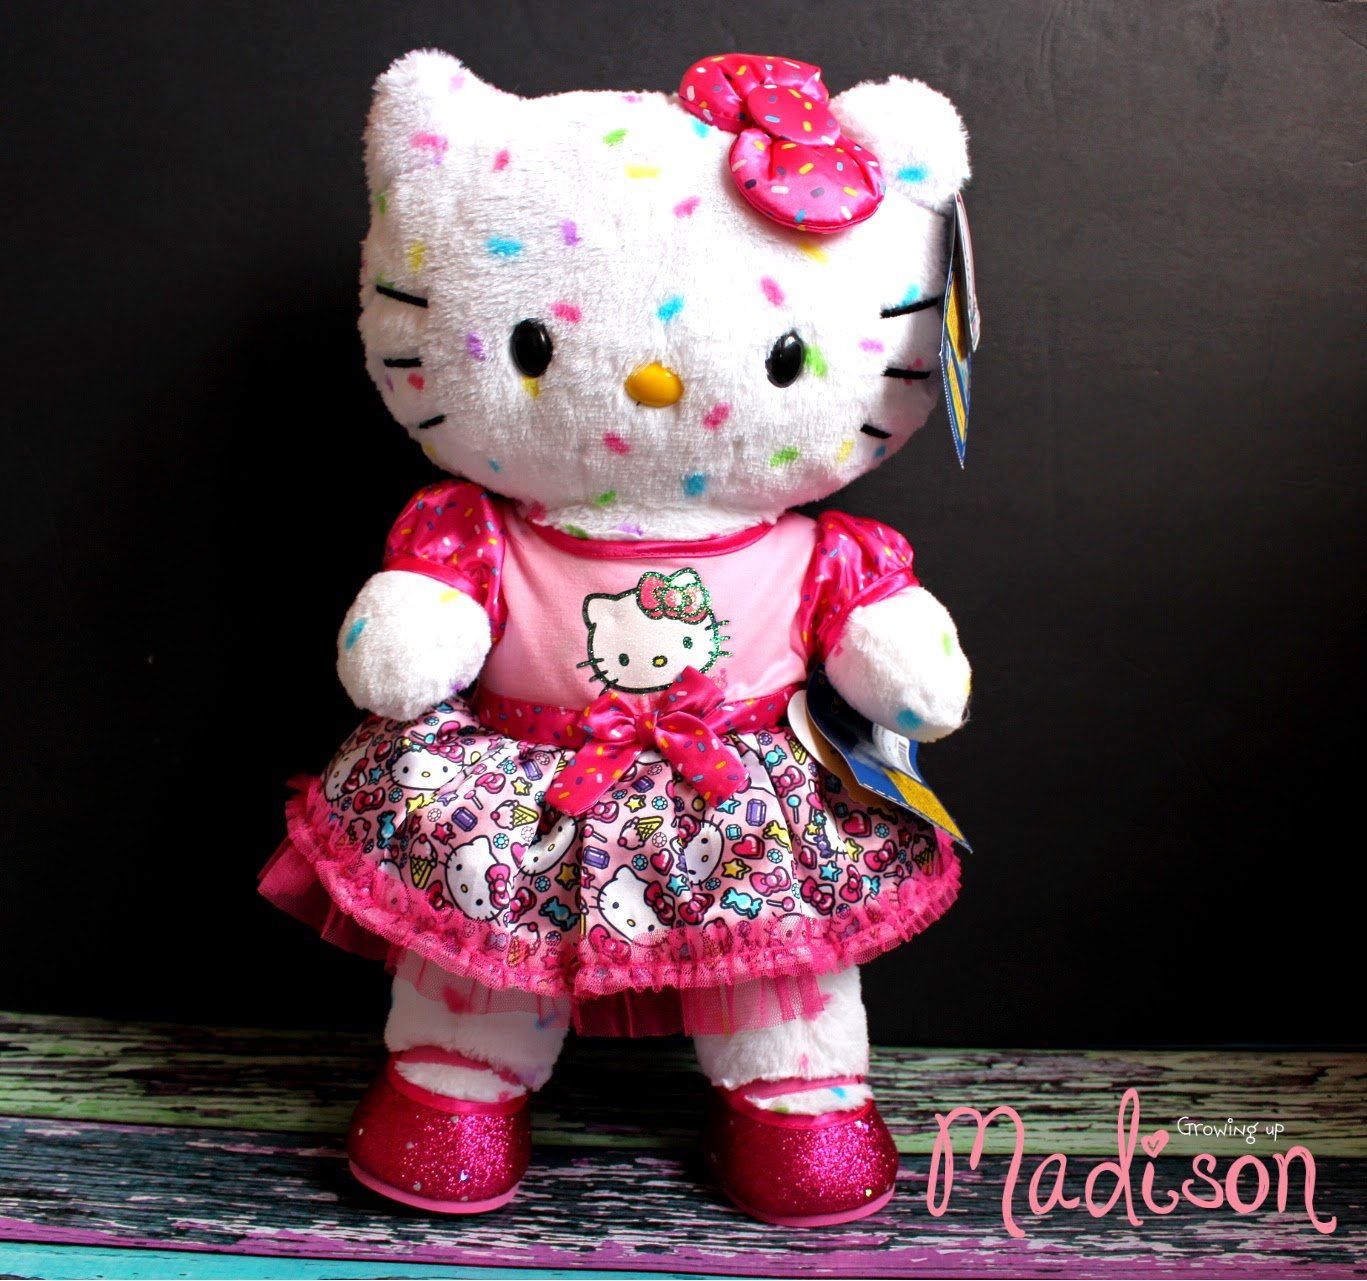 Maries Manor Hello Kitty: Celebrate The 40th Anniversary Of Hello Kitty At Build-A